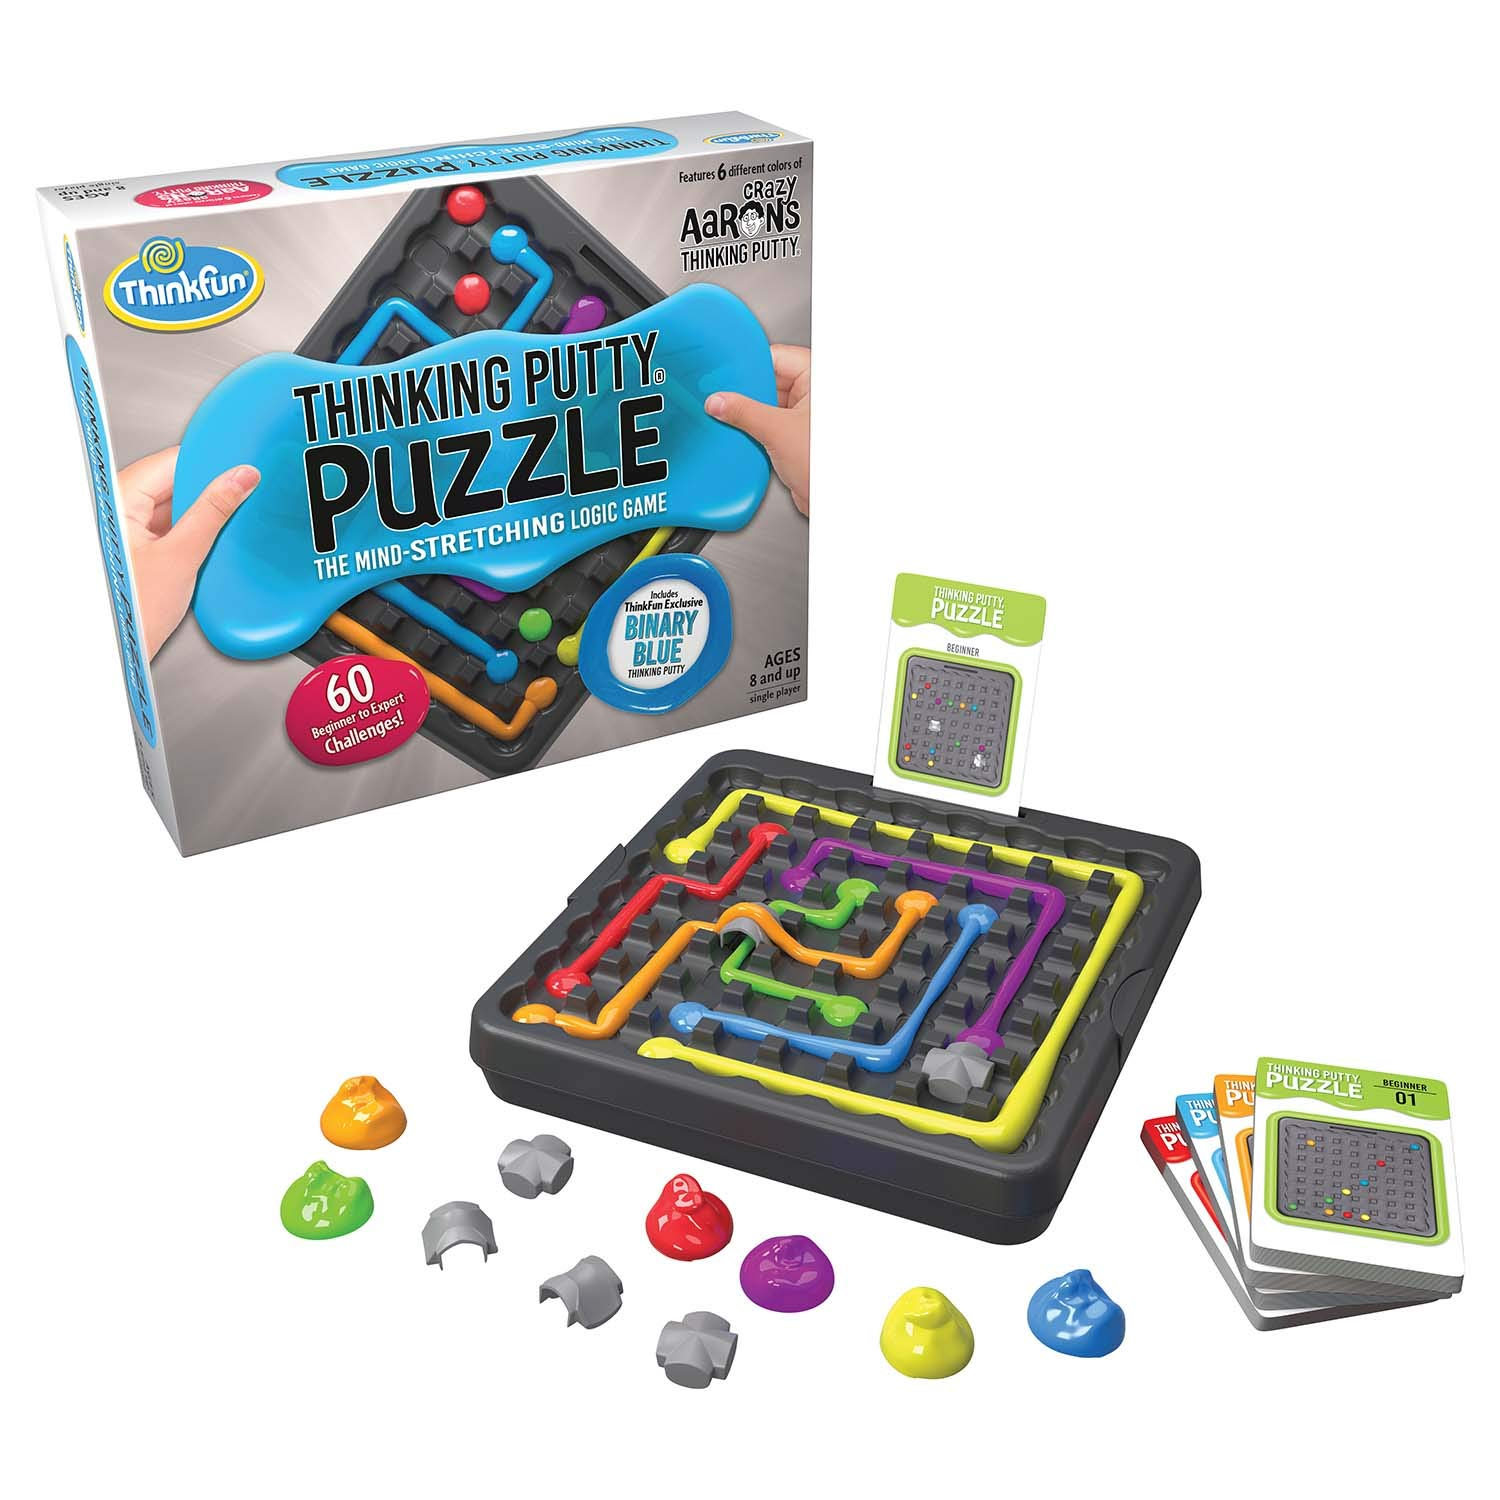 ThinkFun and Crazy Aaron's Thinking Putty Puzzle and STEM Toy for Boys and Girls Ages 8 and Up - The Famous Thinking Putty in Logic Game Form by Think Fun